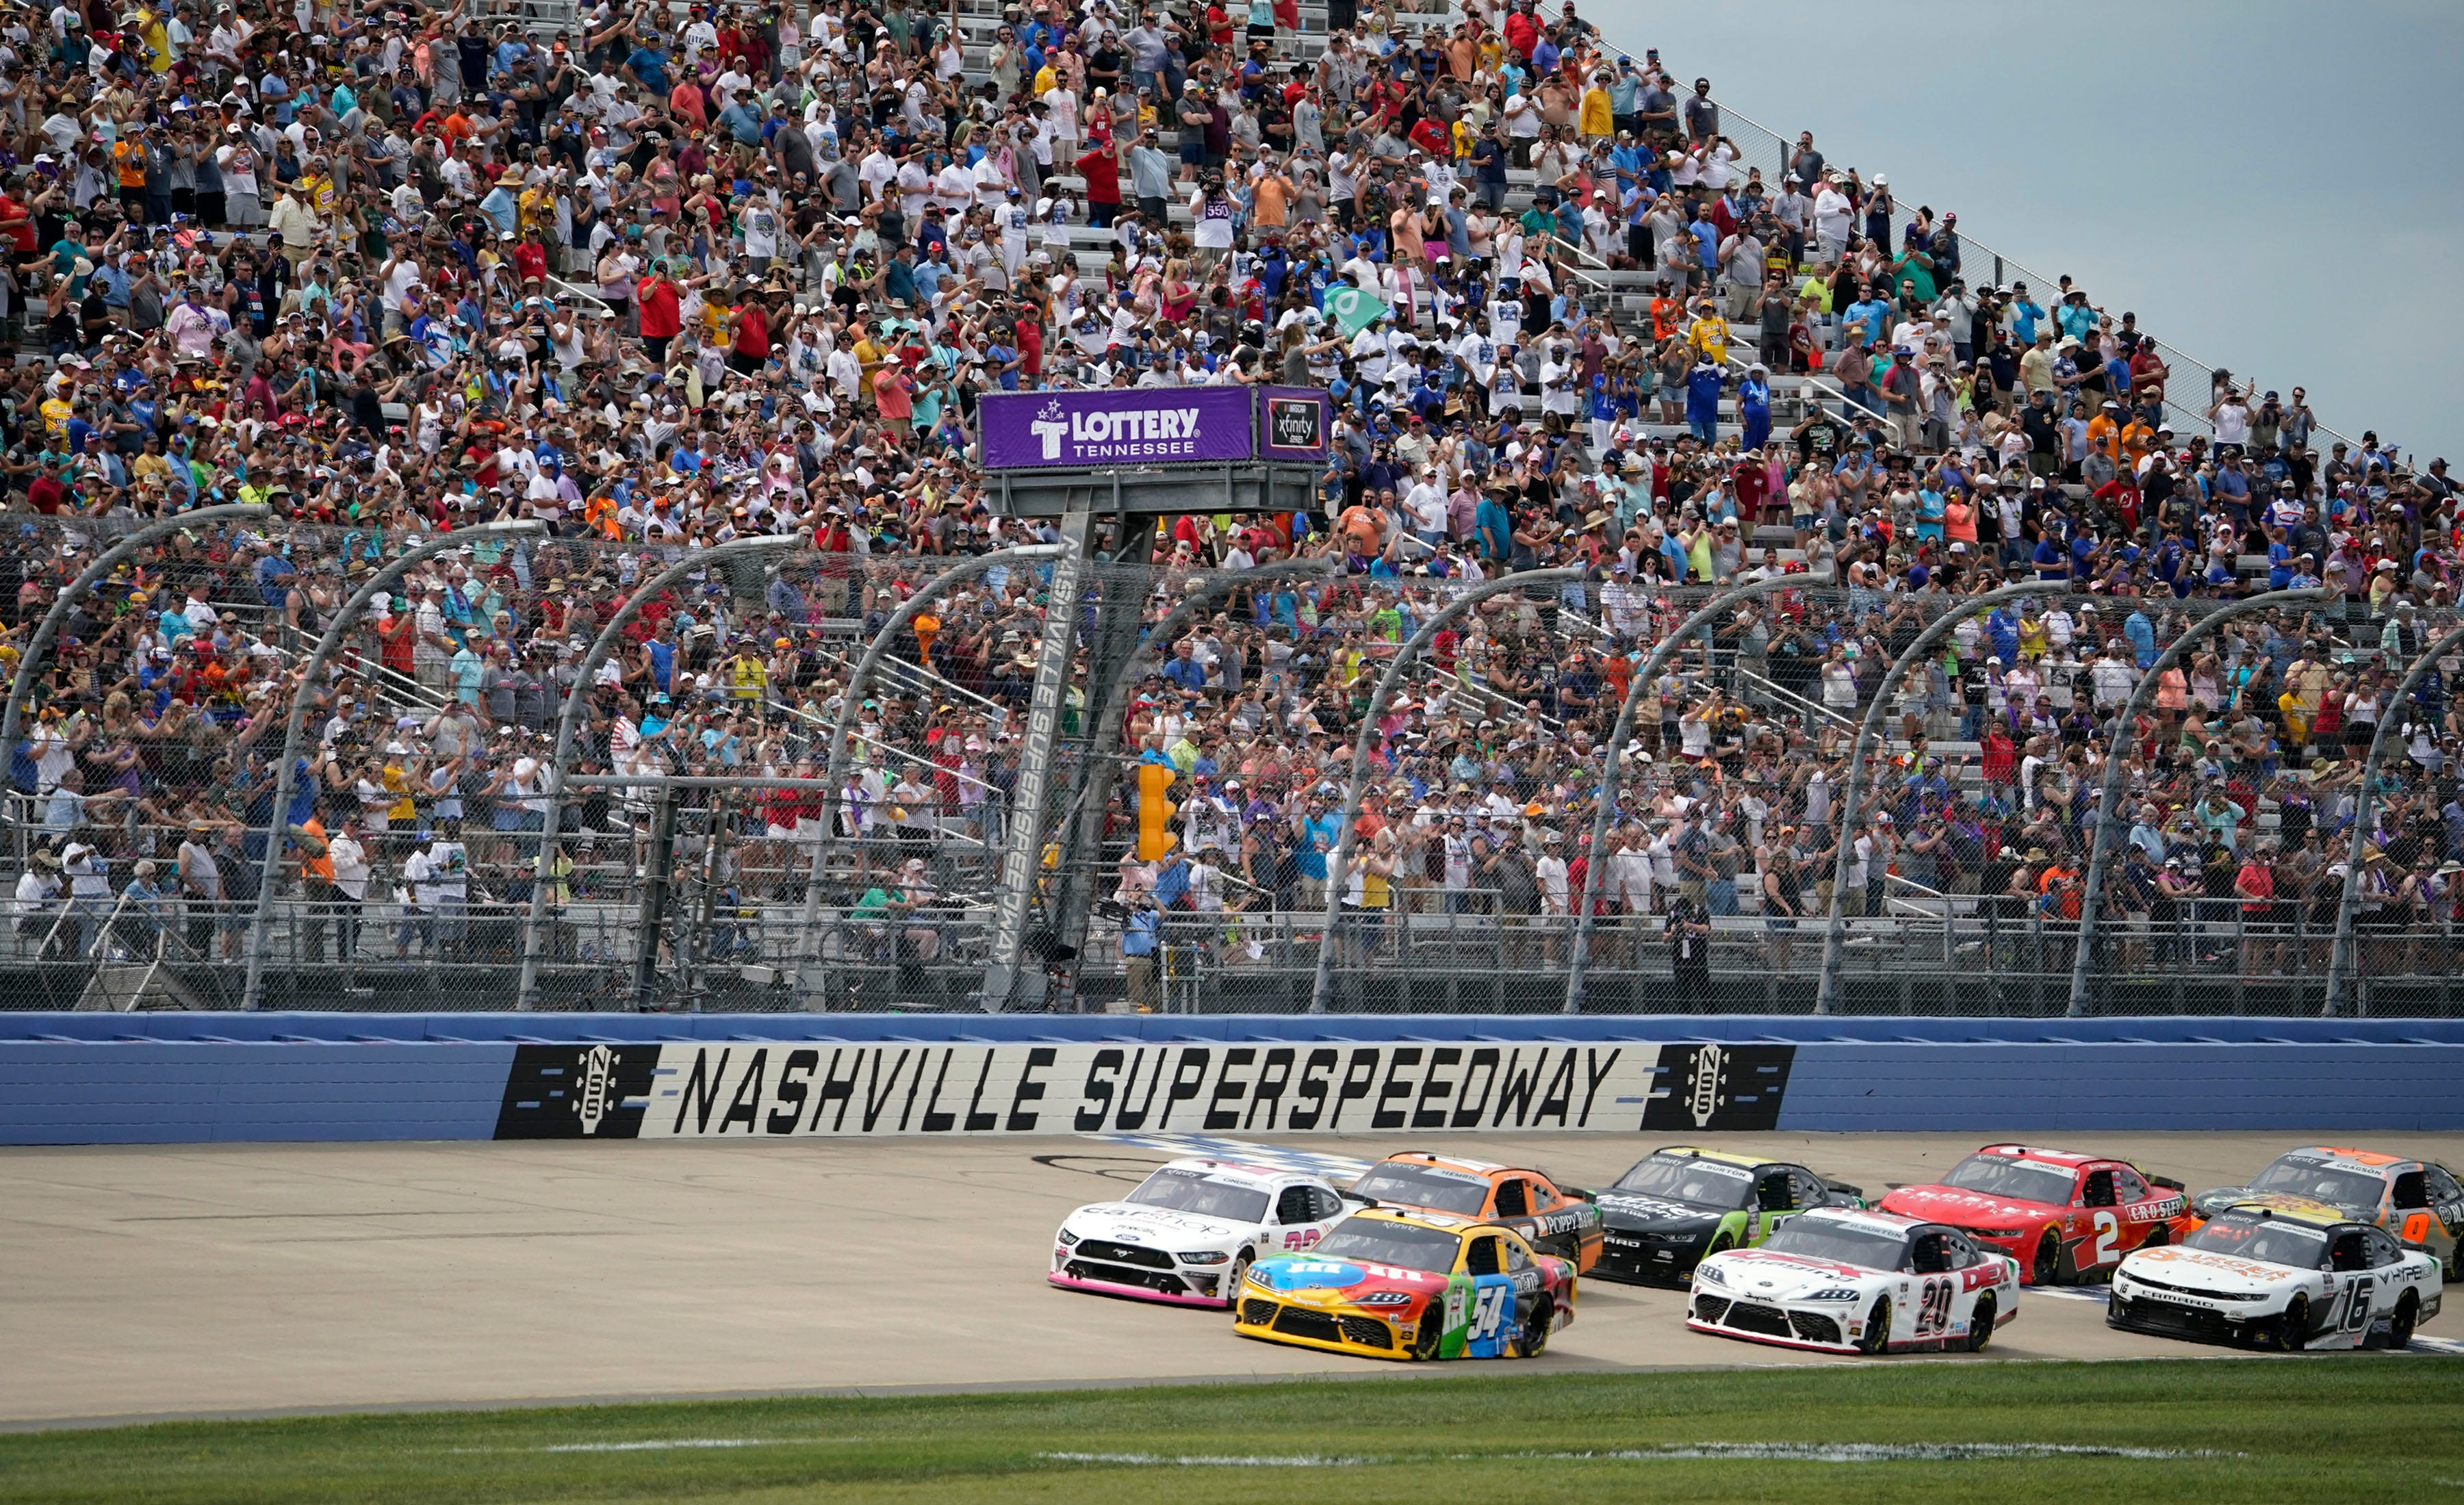 NASCAR at Nashville: Start time, lineup, TV, streaming schedule and more for Ally 400